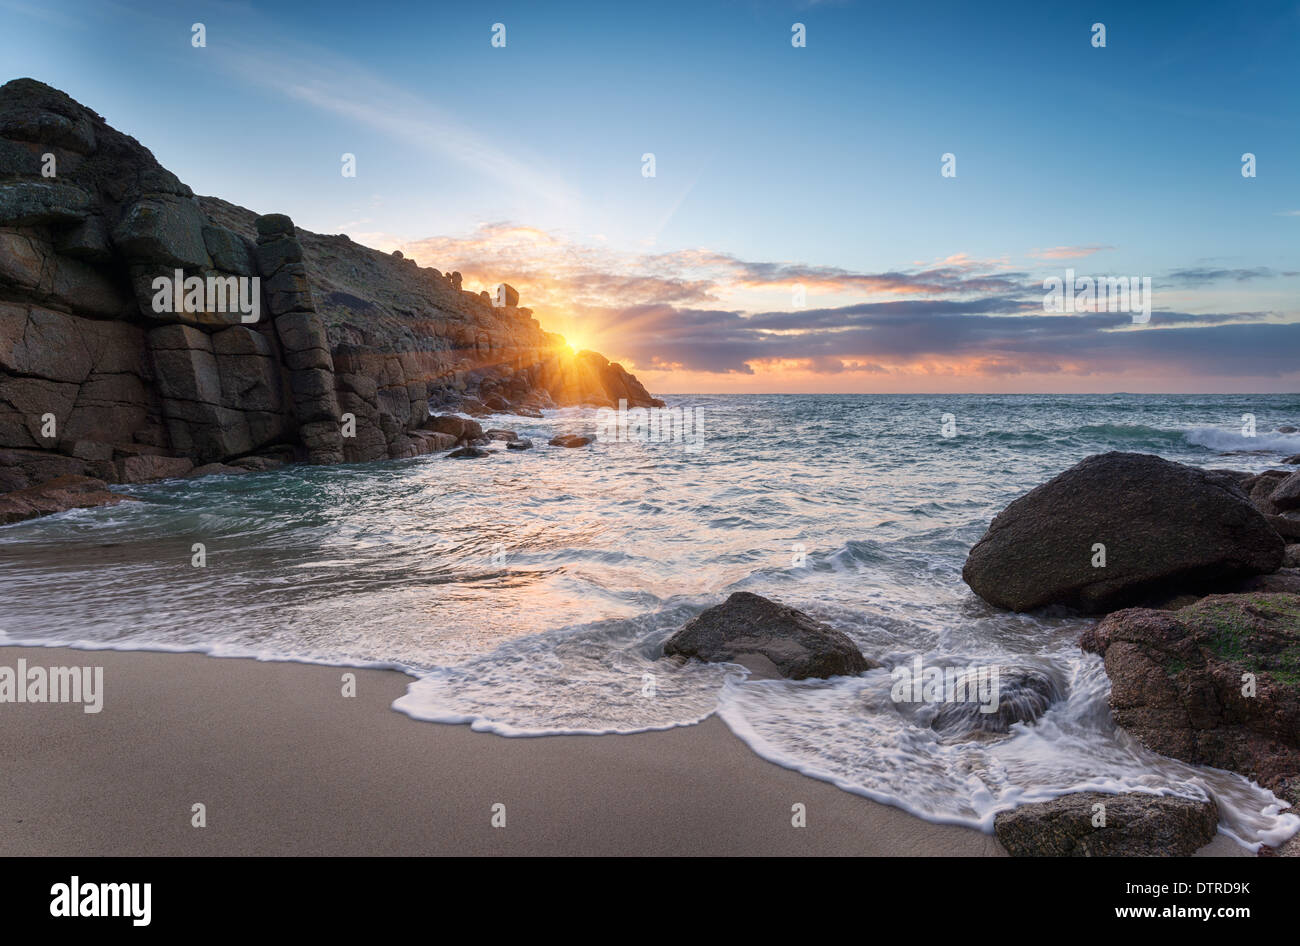 Sunrise at Porthgwarra Cove on the Lands End Peninsula in Cornwall - Stock Image